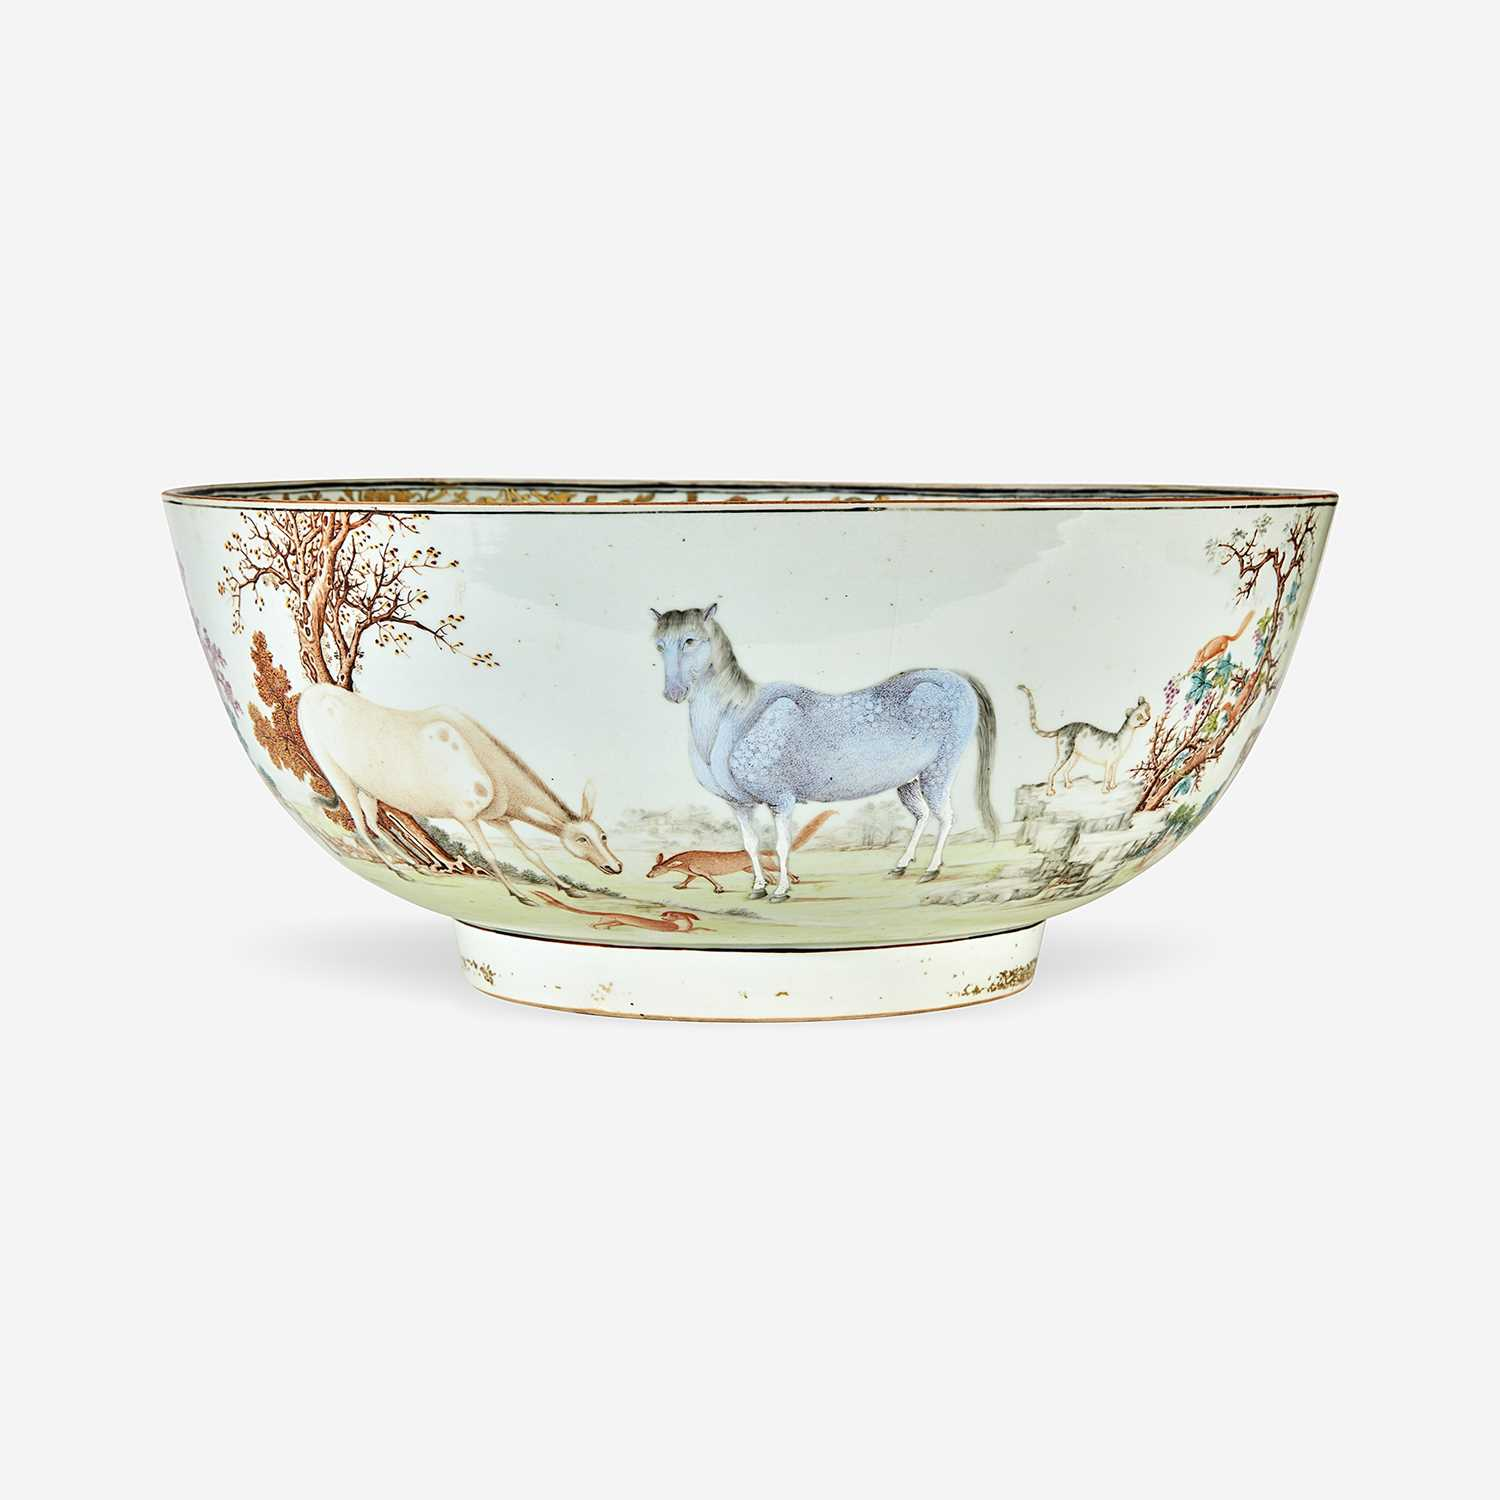 Lot 95 - A Chinese Export porcelain gilt and polychrome-decorated punch bowl